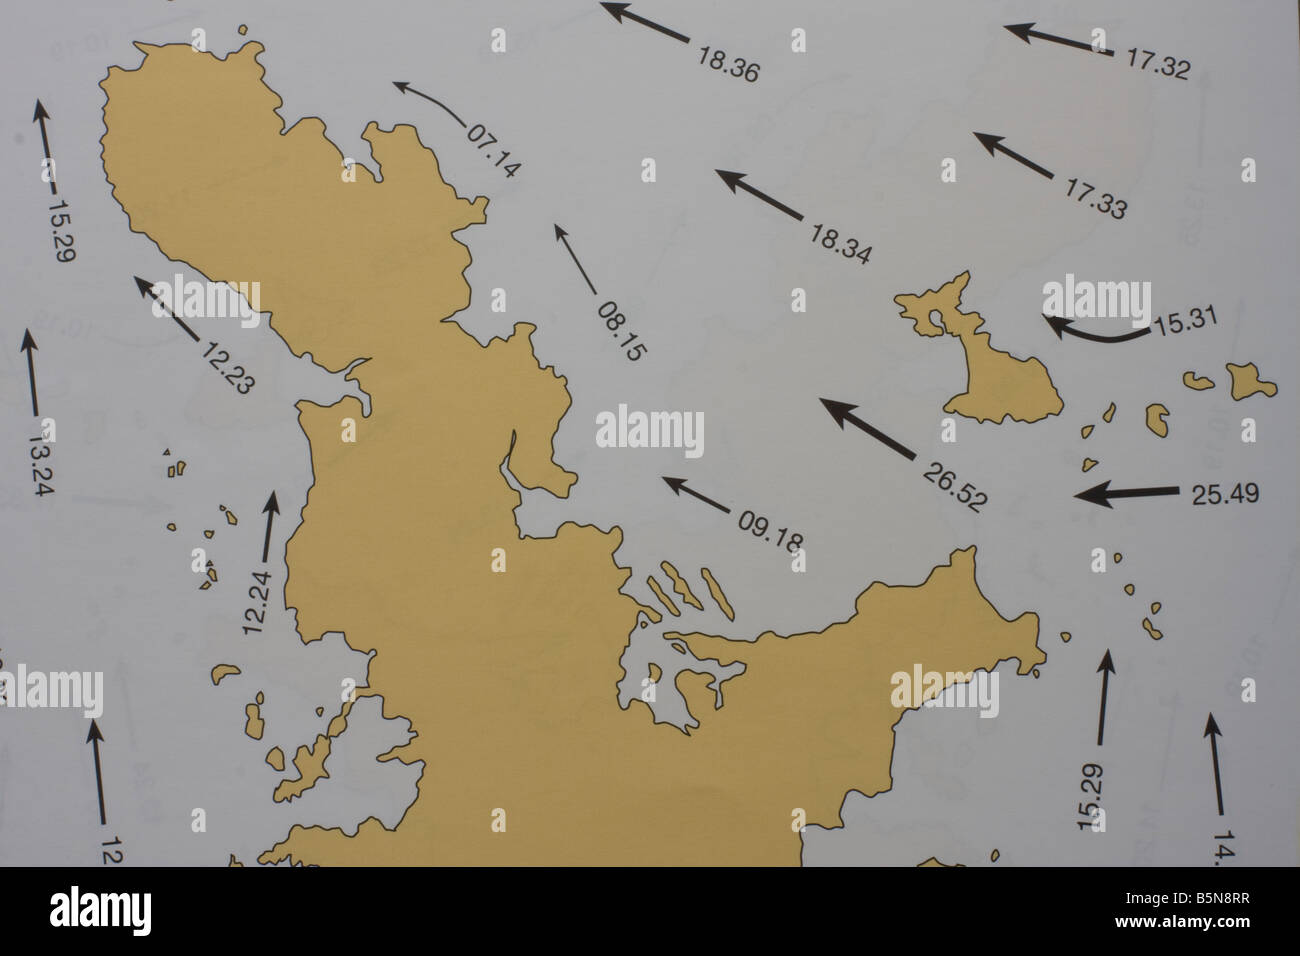 Tidal Chart Stock Photos Tidal Chart Stock Images Alamy